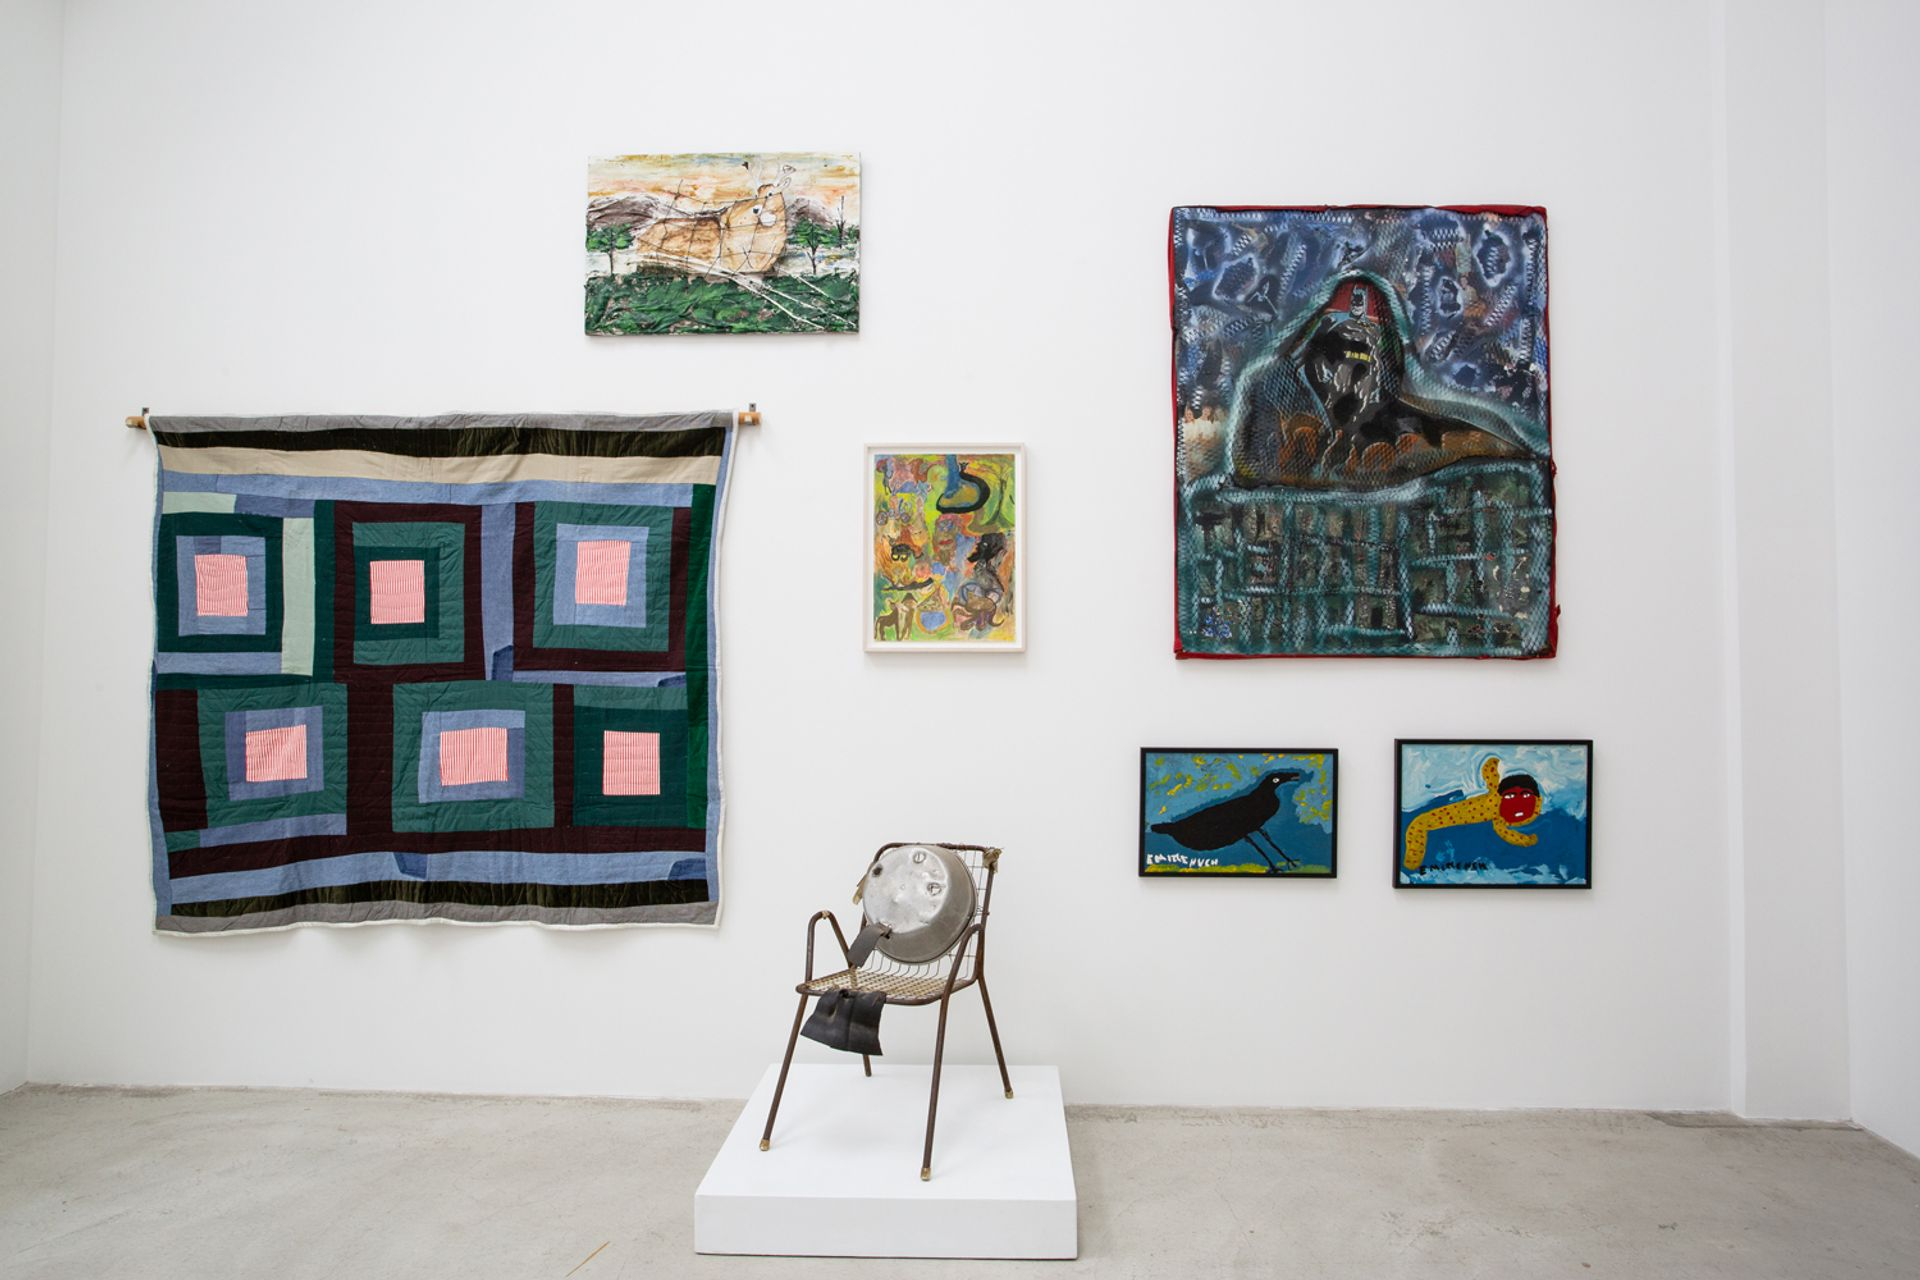 Installation view of Keep Your Lamps Trimmed and Burning On view at Shin Gallery, curated by Scott Ogden as part of the Outsider Art Fair 2021 Photo: Olya Vysotskaya